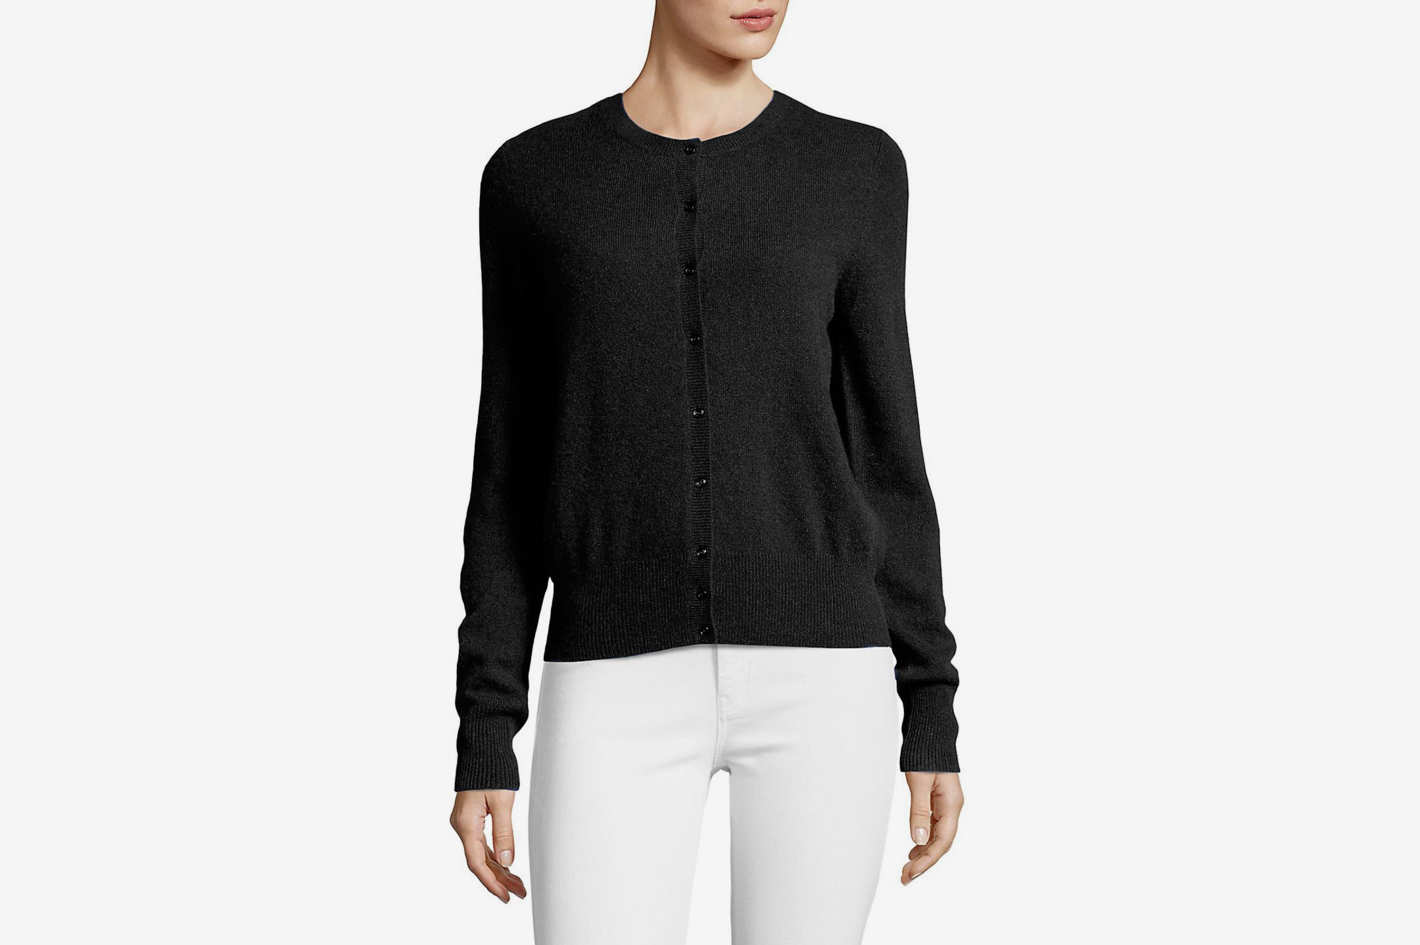 Lord & Taylor Essential Cashmere Cardigan